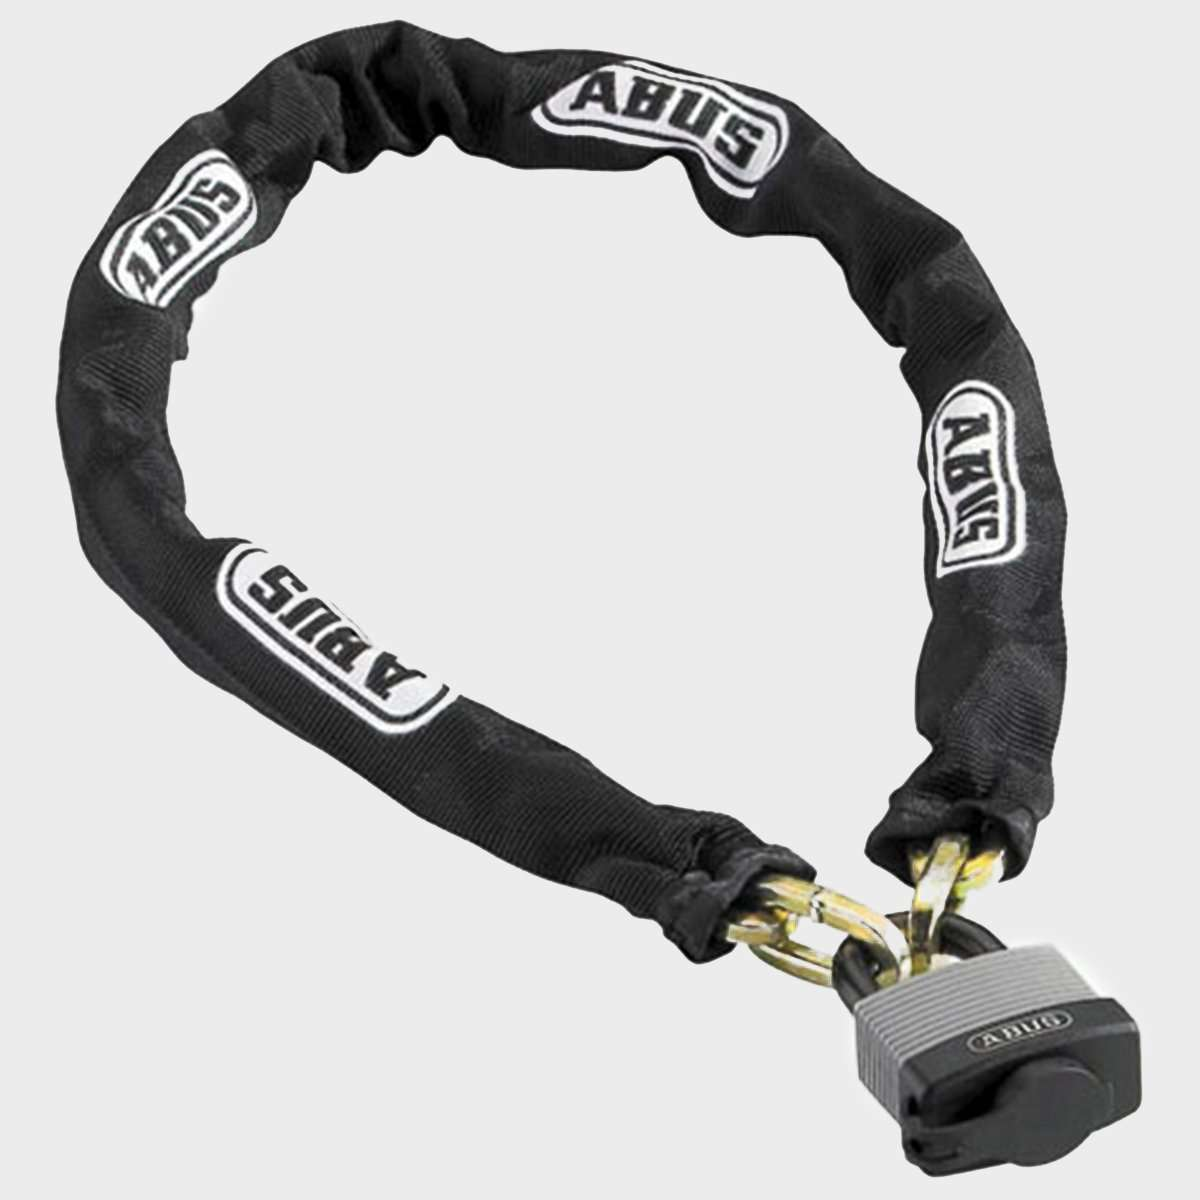 ABUS Expedition 70 85cm Chain Lock